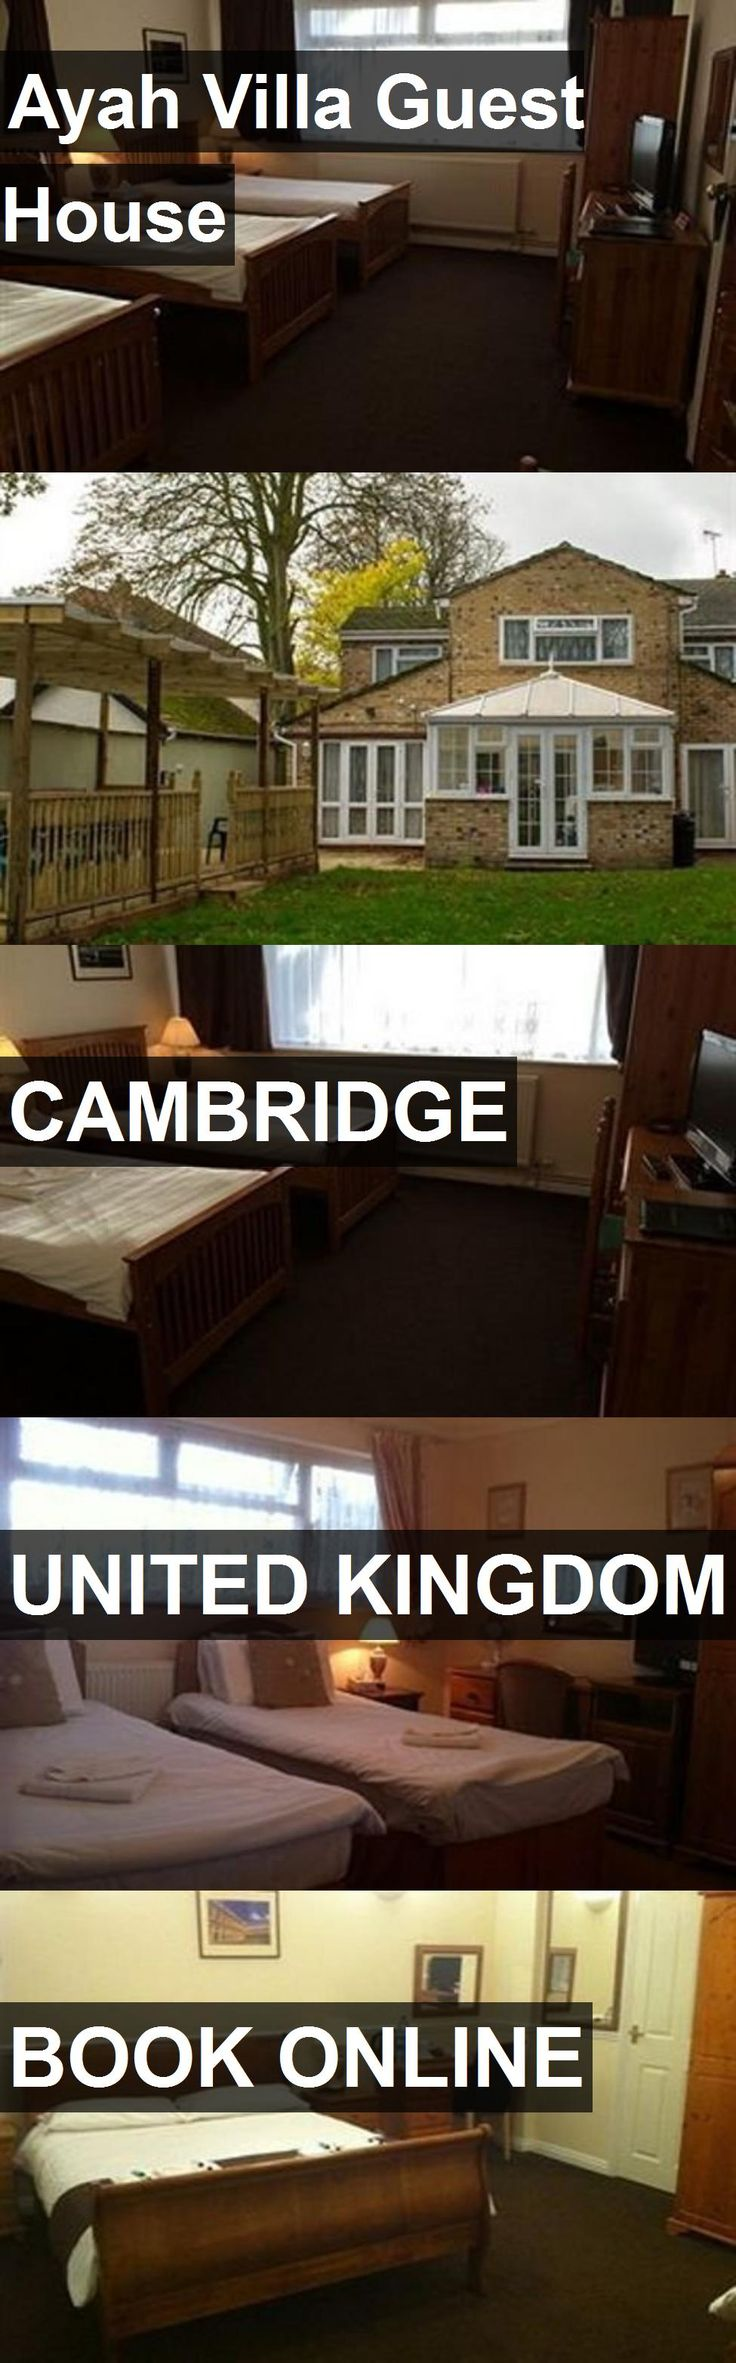 Ayah Villa Guest House in Cambridge, United Kingdom. For more information, photos, reviews and best prices please follow the link. #UnitedKingdom #Cambridge #travel #vacation #guesthouse